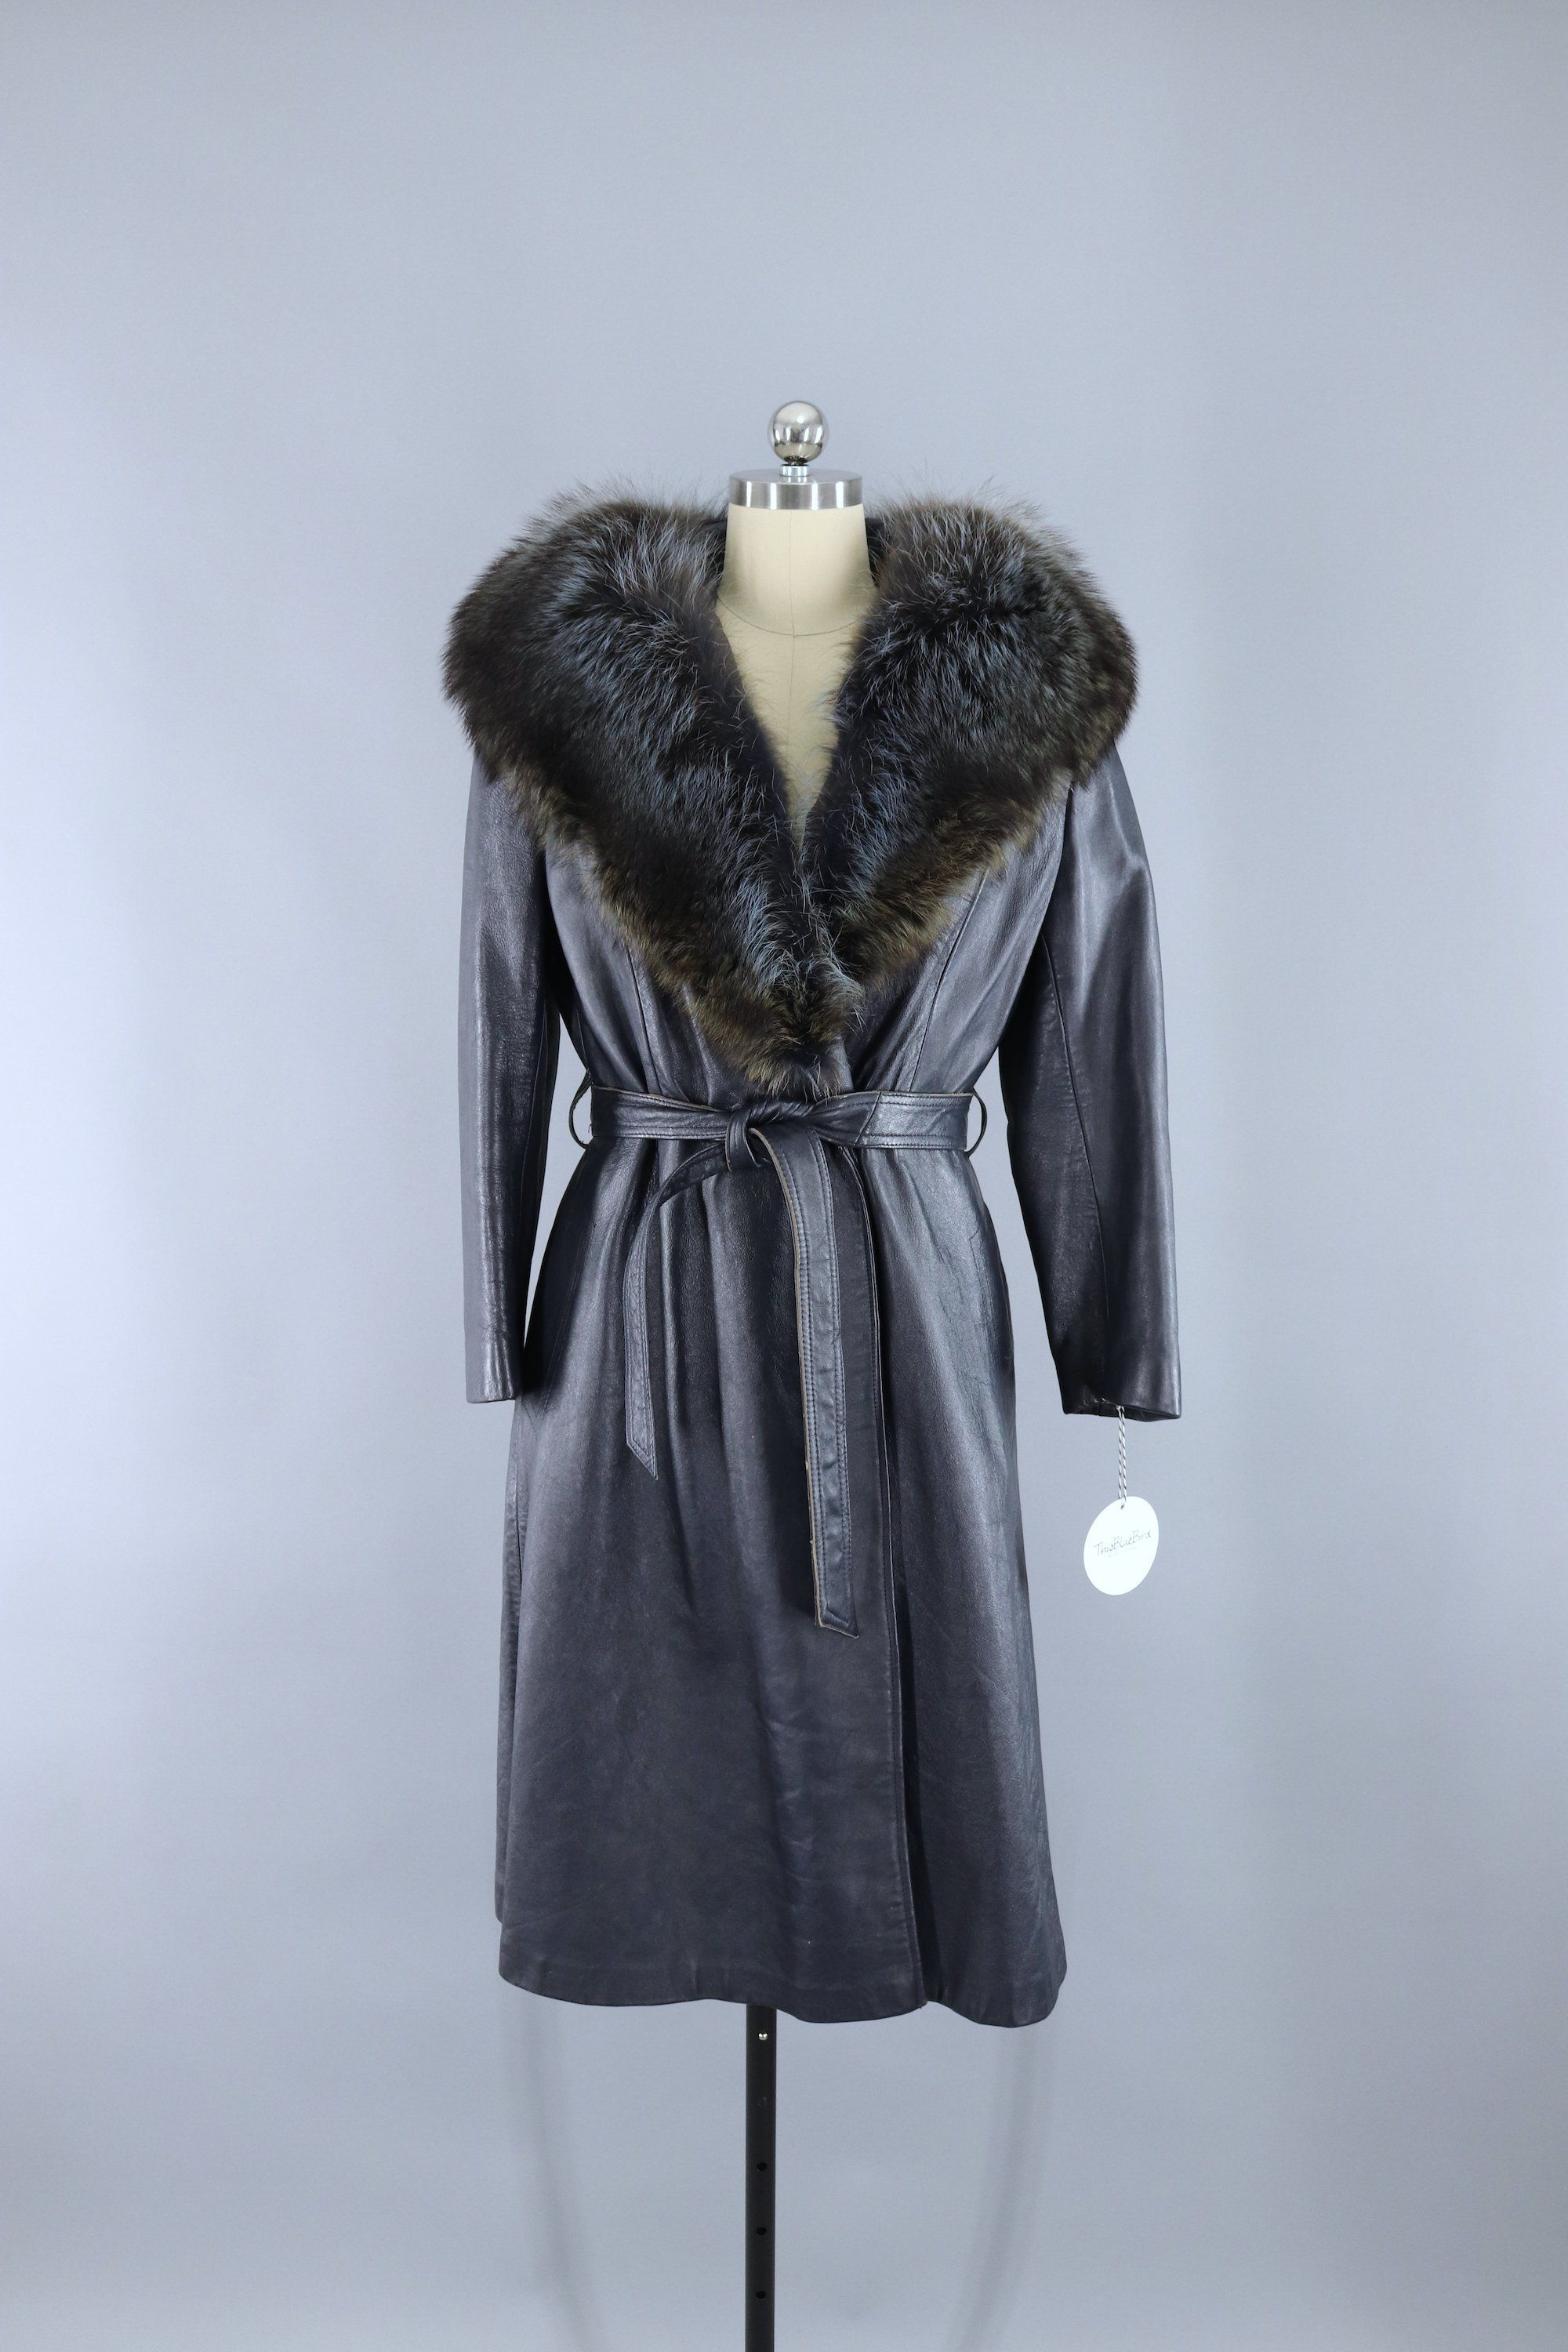 Vintage 1960s Charcoal Blue Grey Leather Coat with Fur